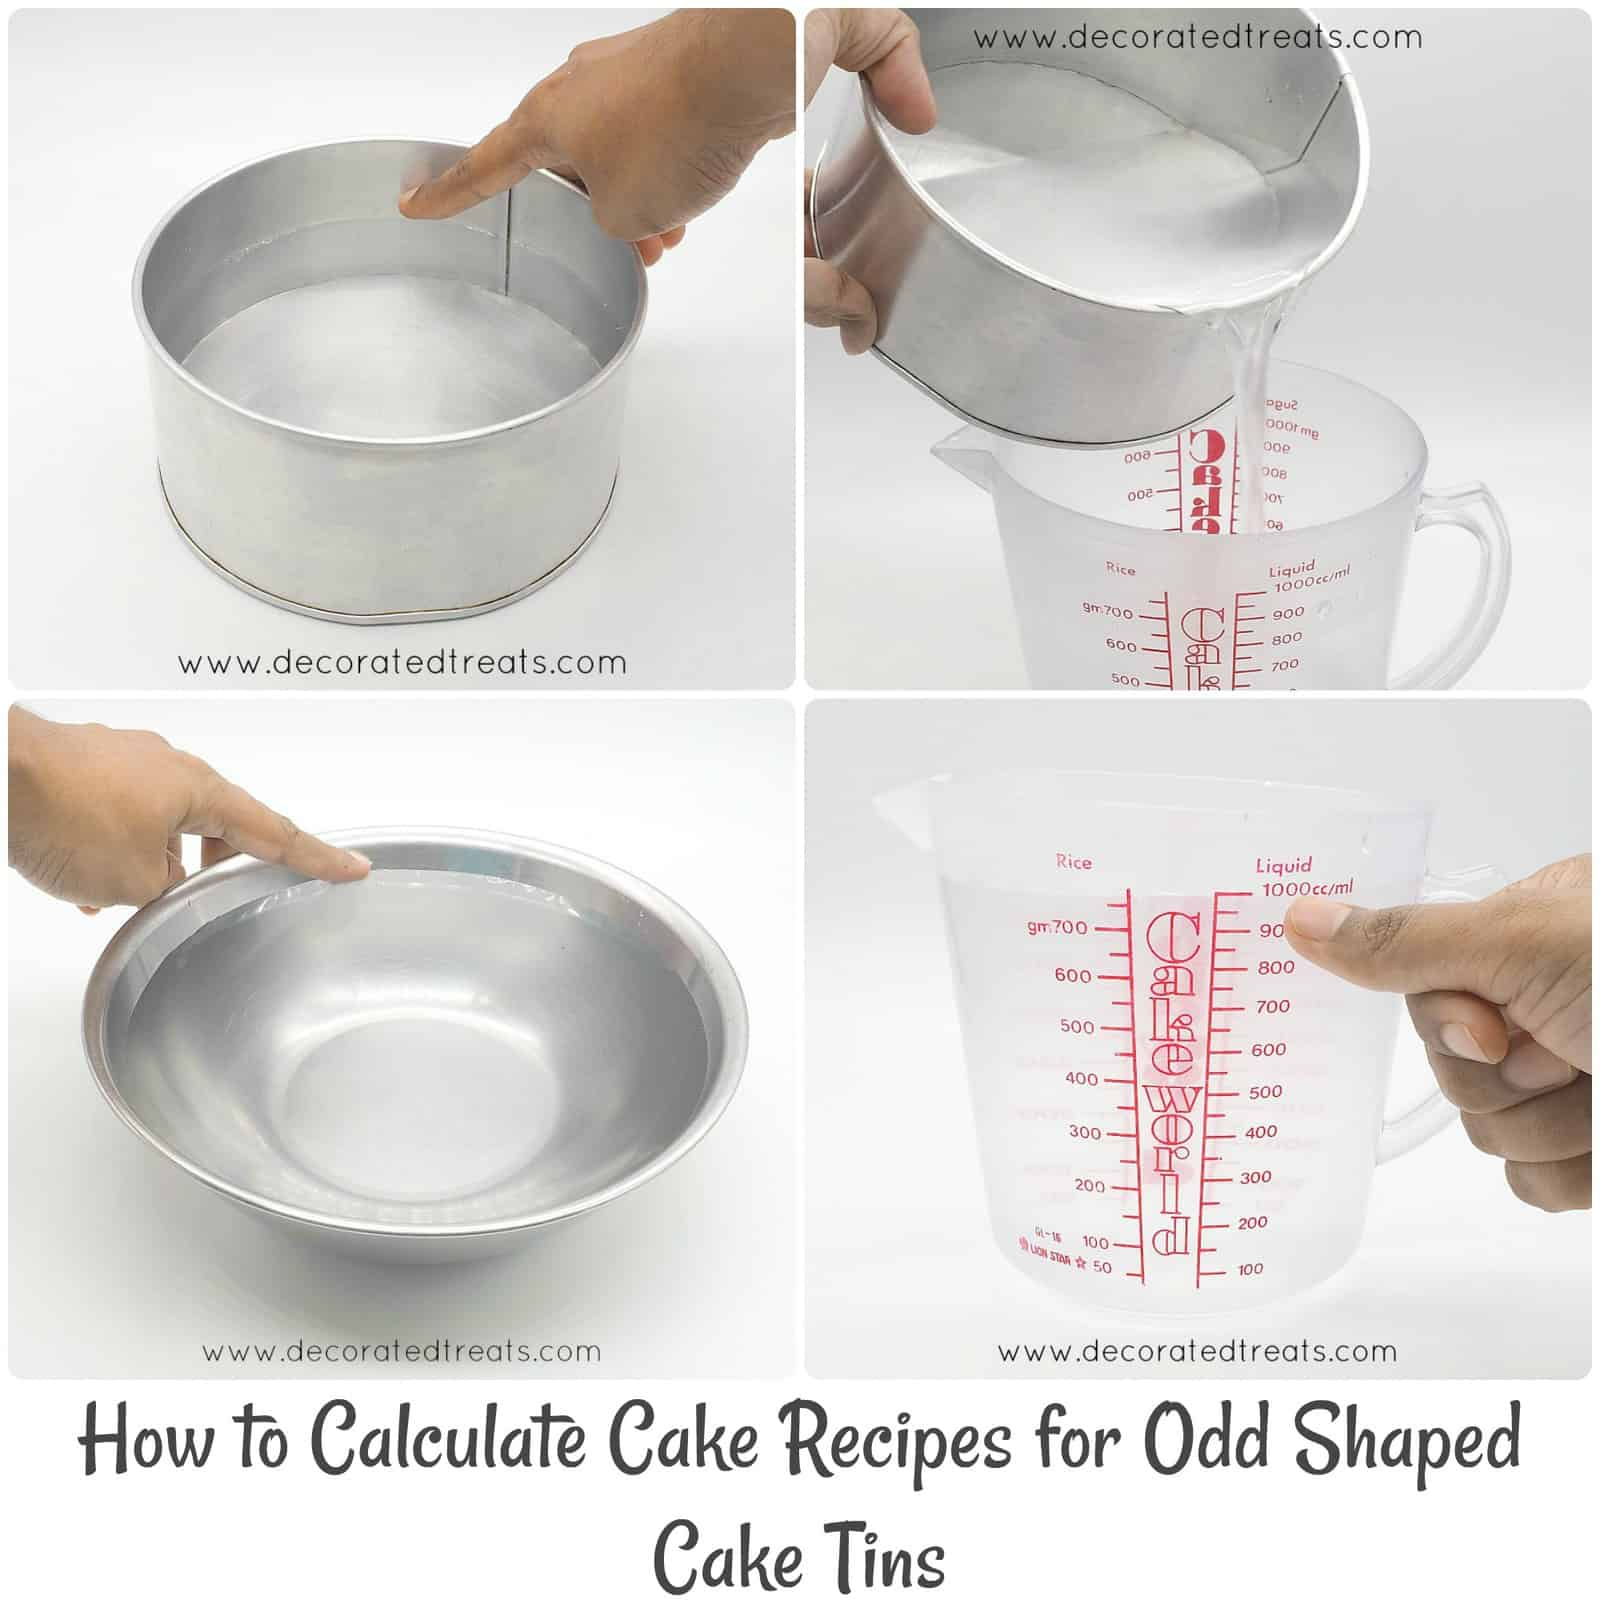 Poster on how to calculate cake recipes with images of cake tins and measuring jugs